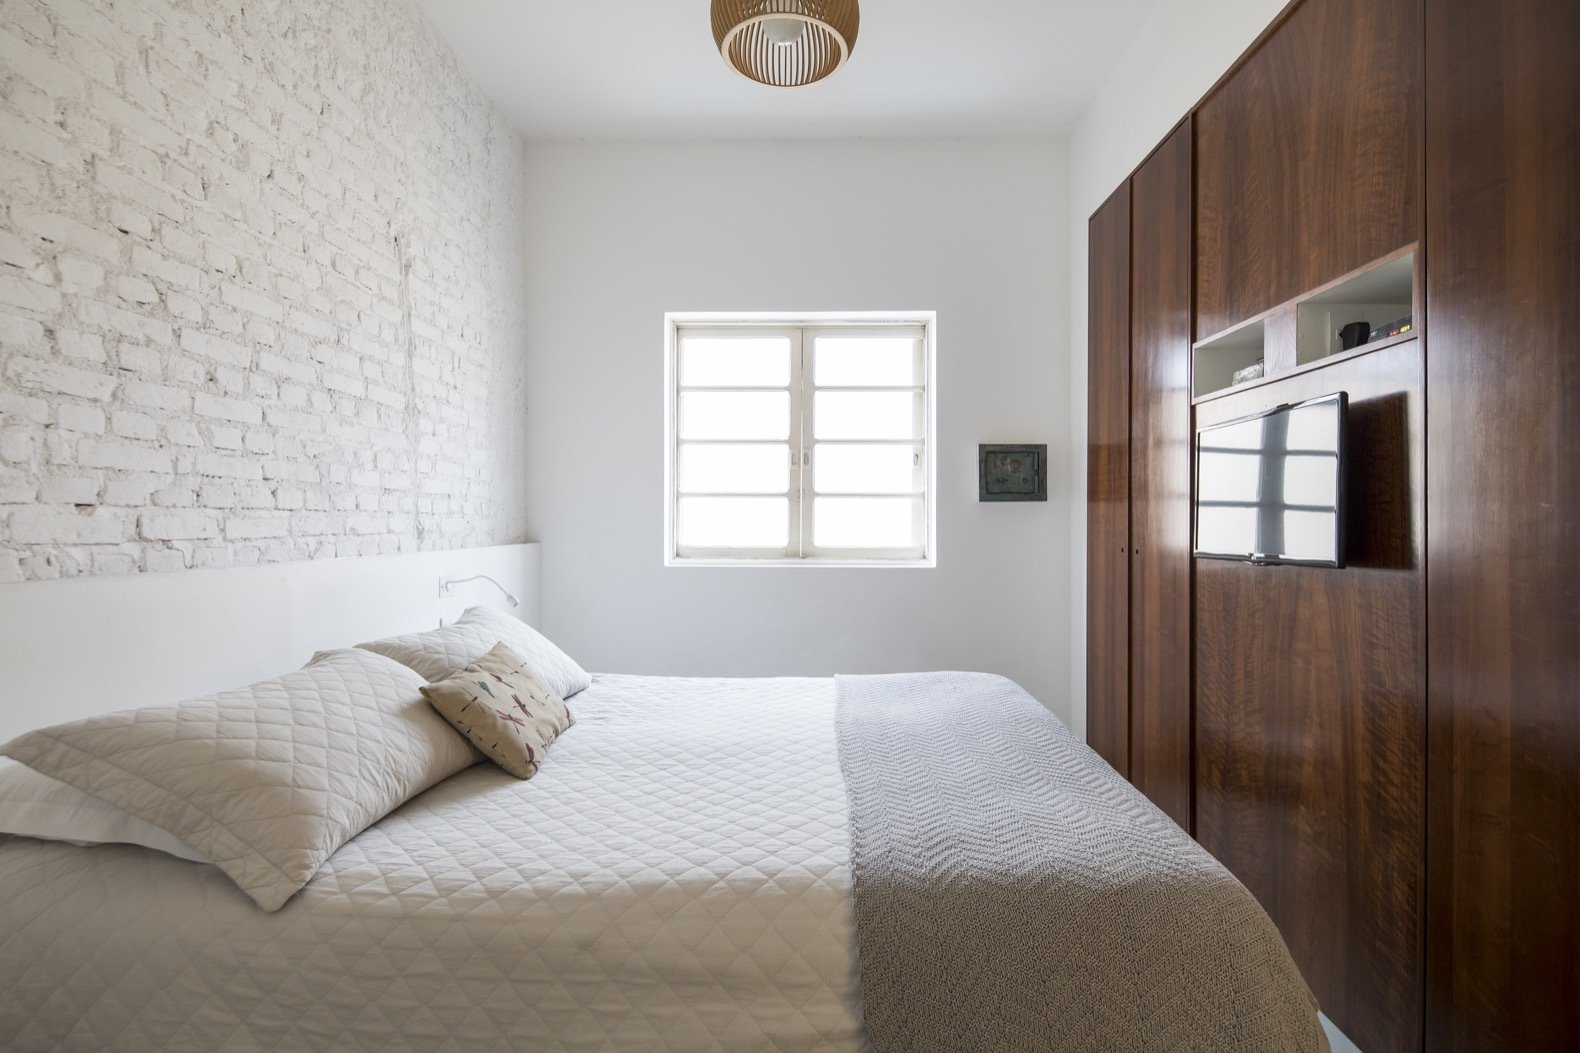 Bedroom, Bed, Dresser, and Ceiling Lighting The perimeter walls have been peeled back to expose the original brick as a reference to the building's past.    Best Photos from Greenery Breathes Fresh Life Into a Brazilian Midcentury